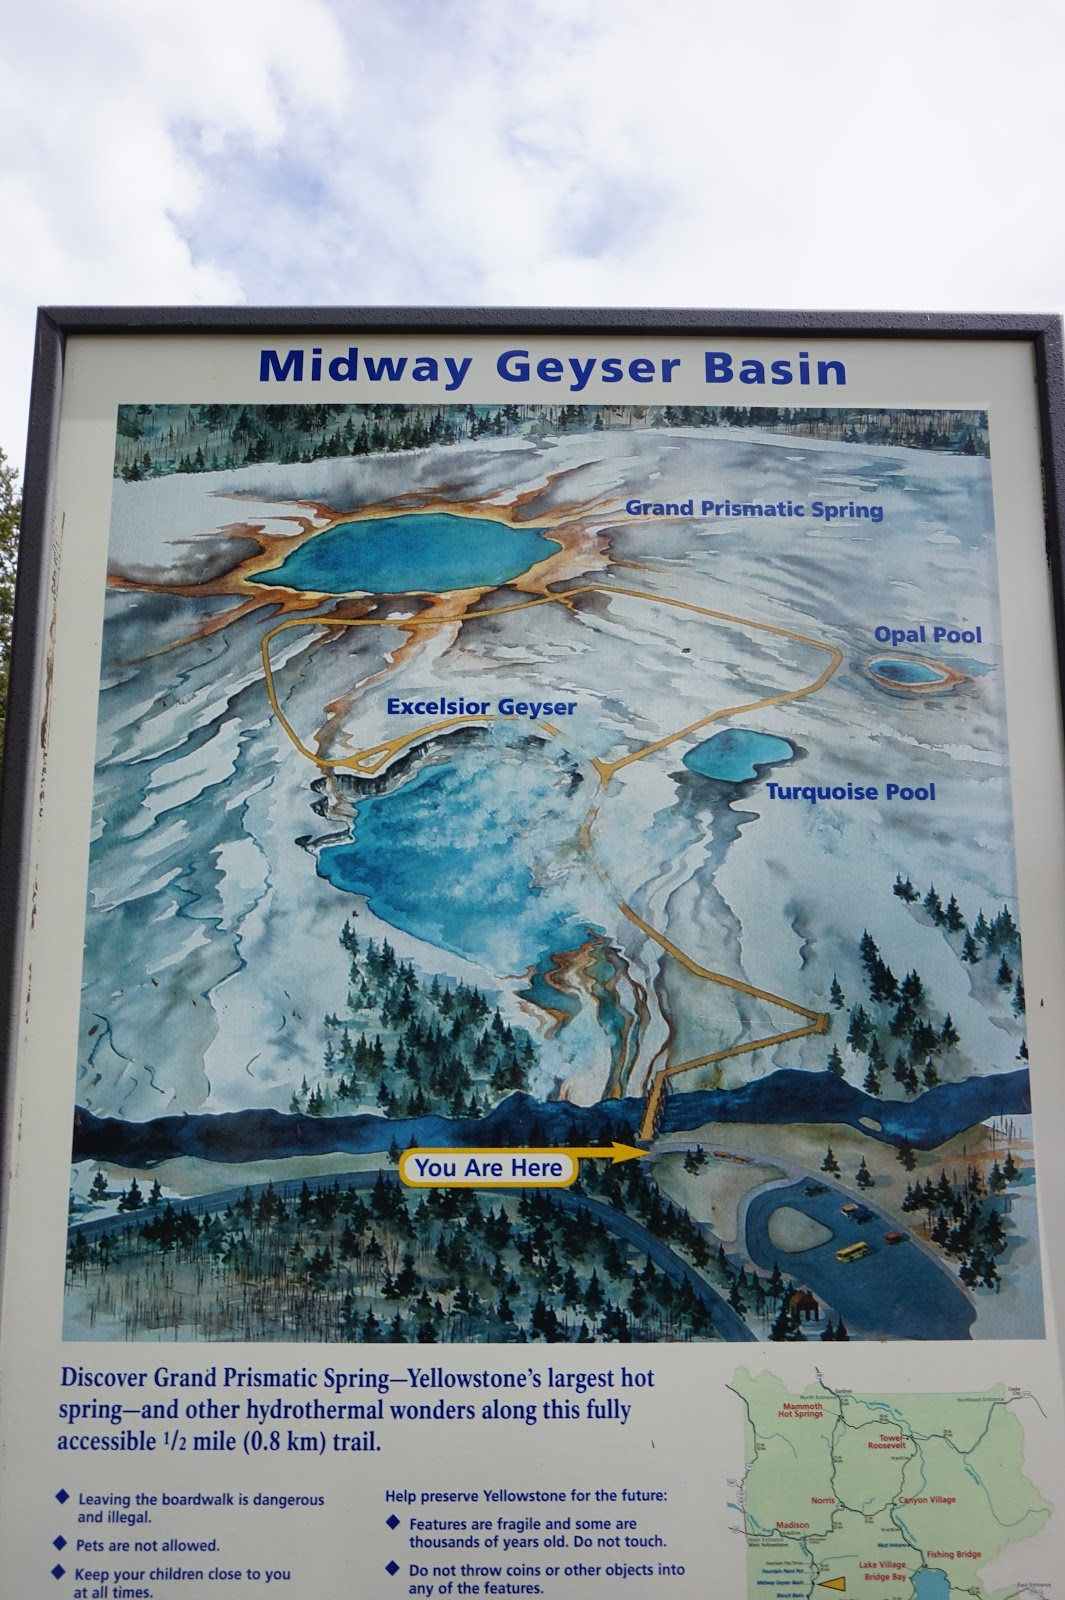 the midway geyser basin is famous for the gorgeous grand prismatic spring it is the park s largest hot spring and home to excelsior geyser s 200x300 foot